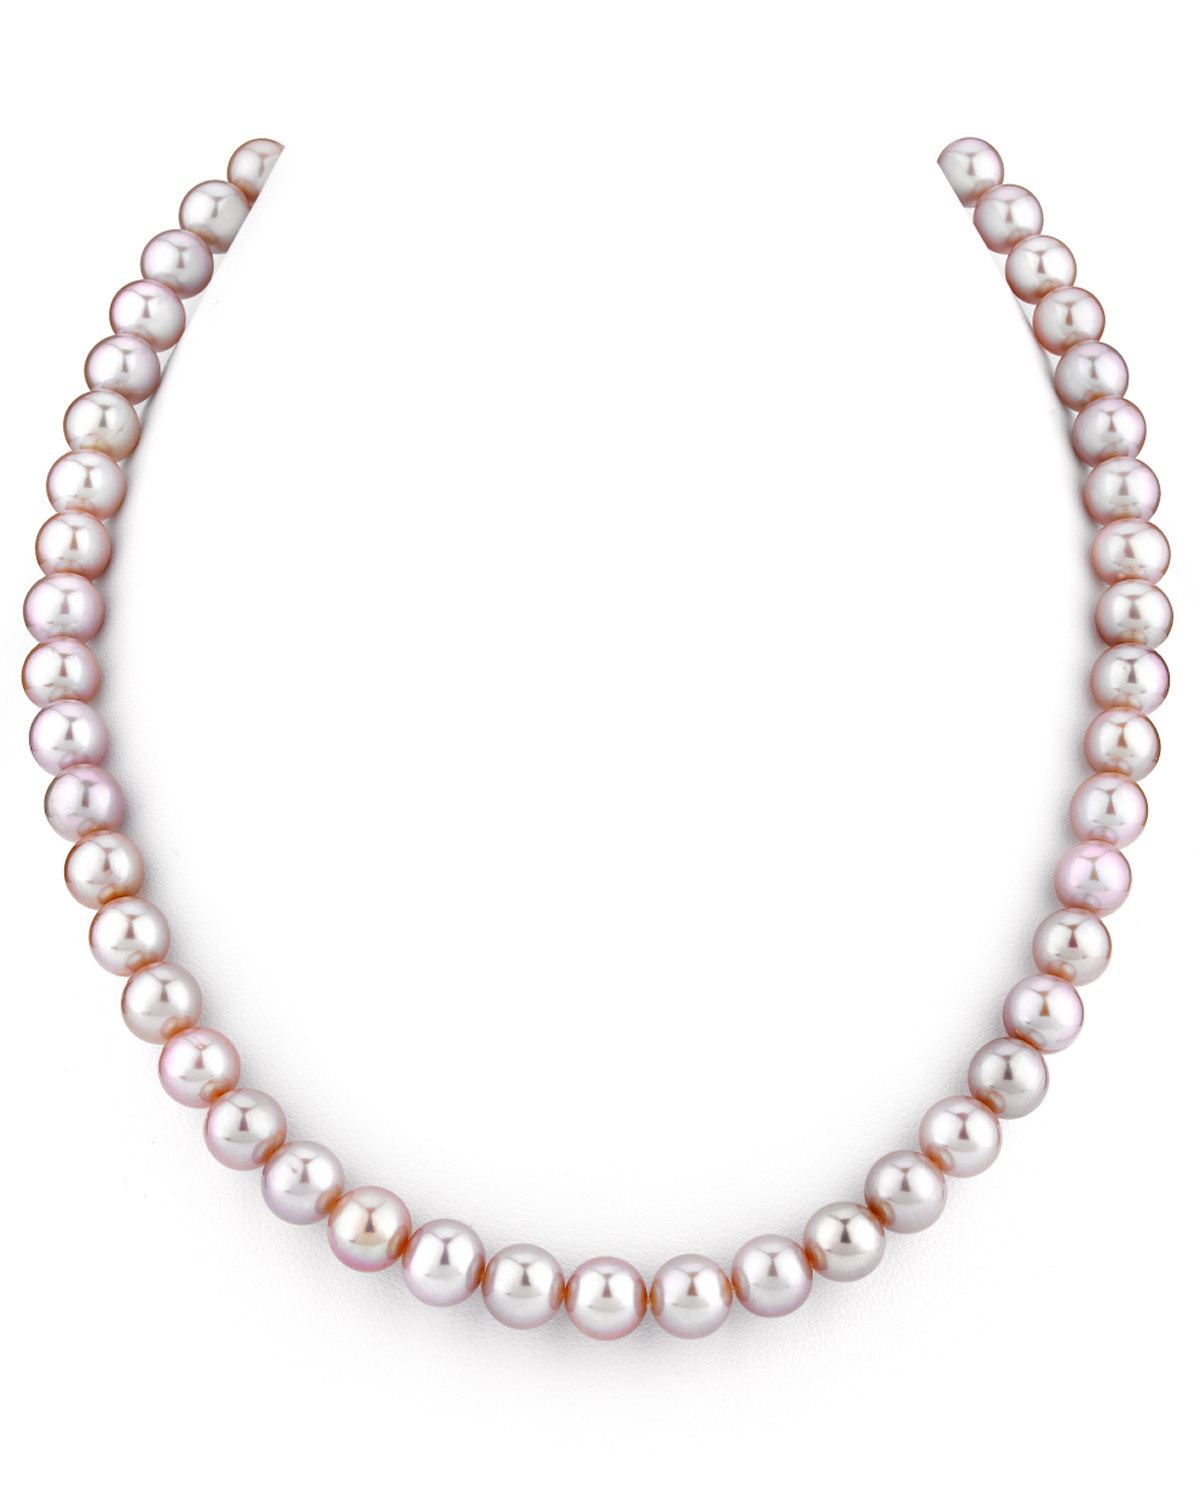 de95e1c60 7-8mm Pink Freshwater Pearl Necklace - AAAA Quality